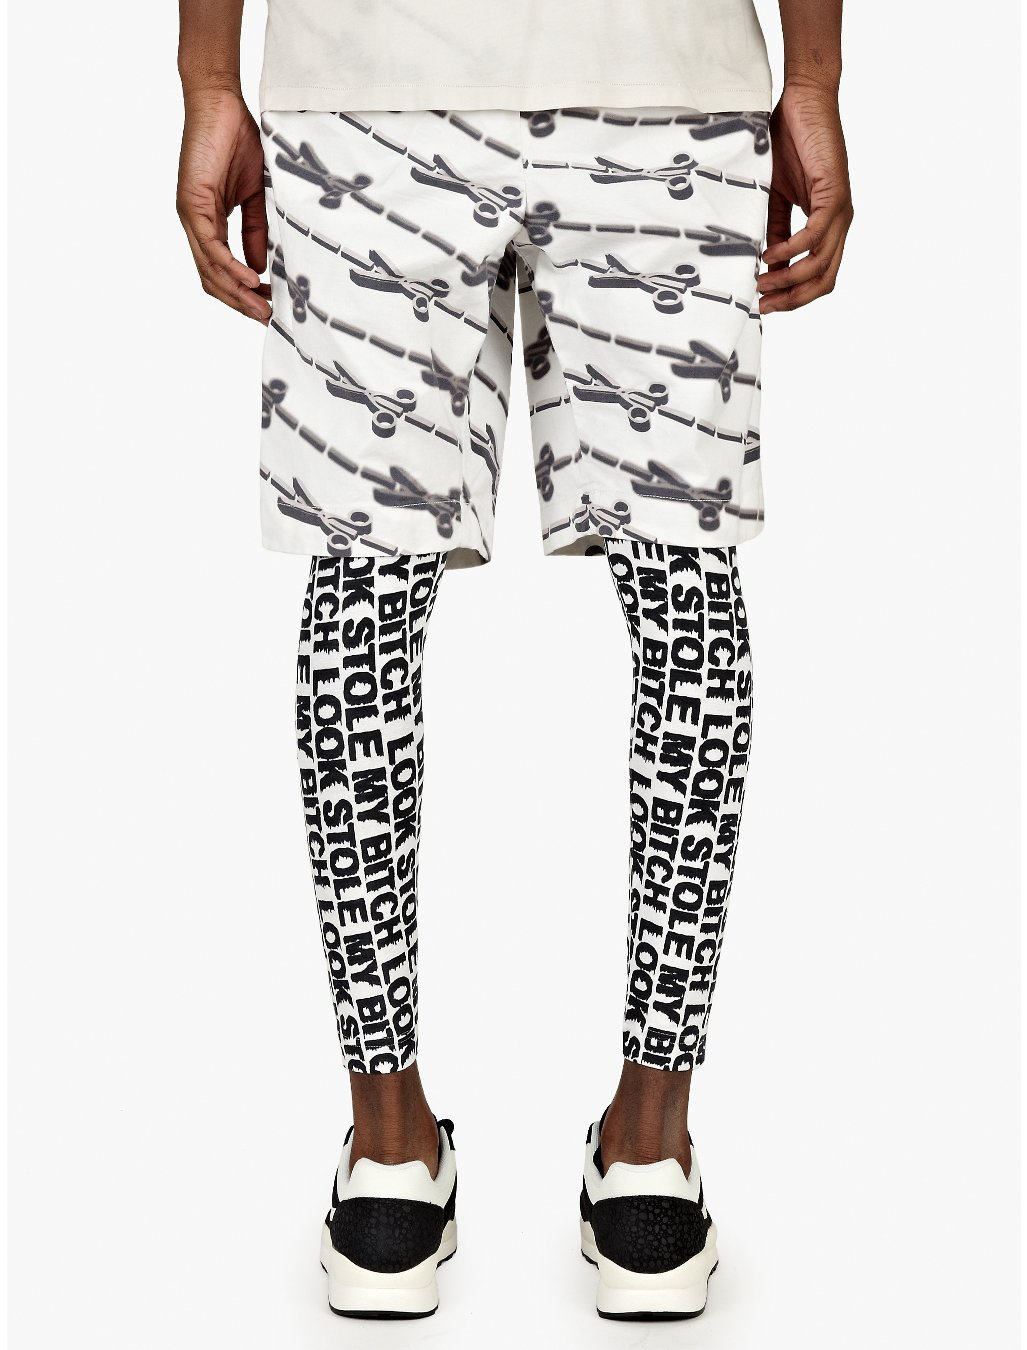 Mens Printed Leggings